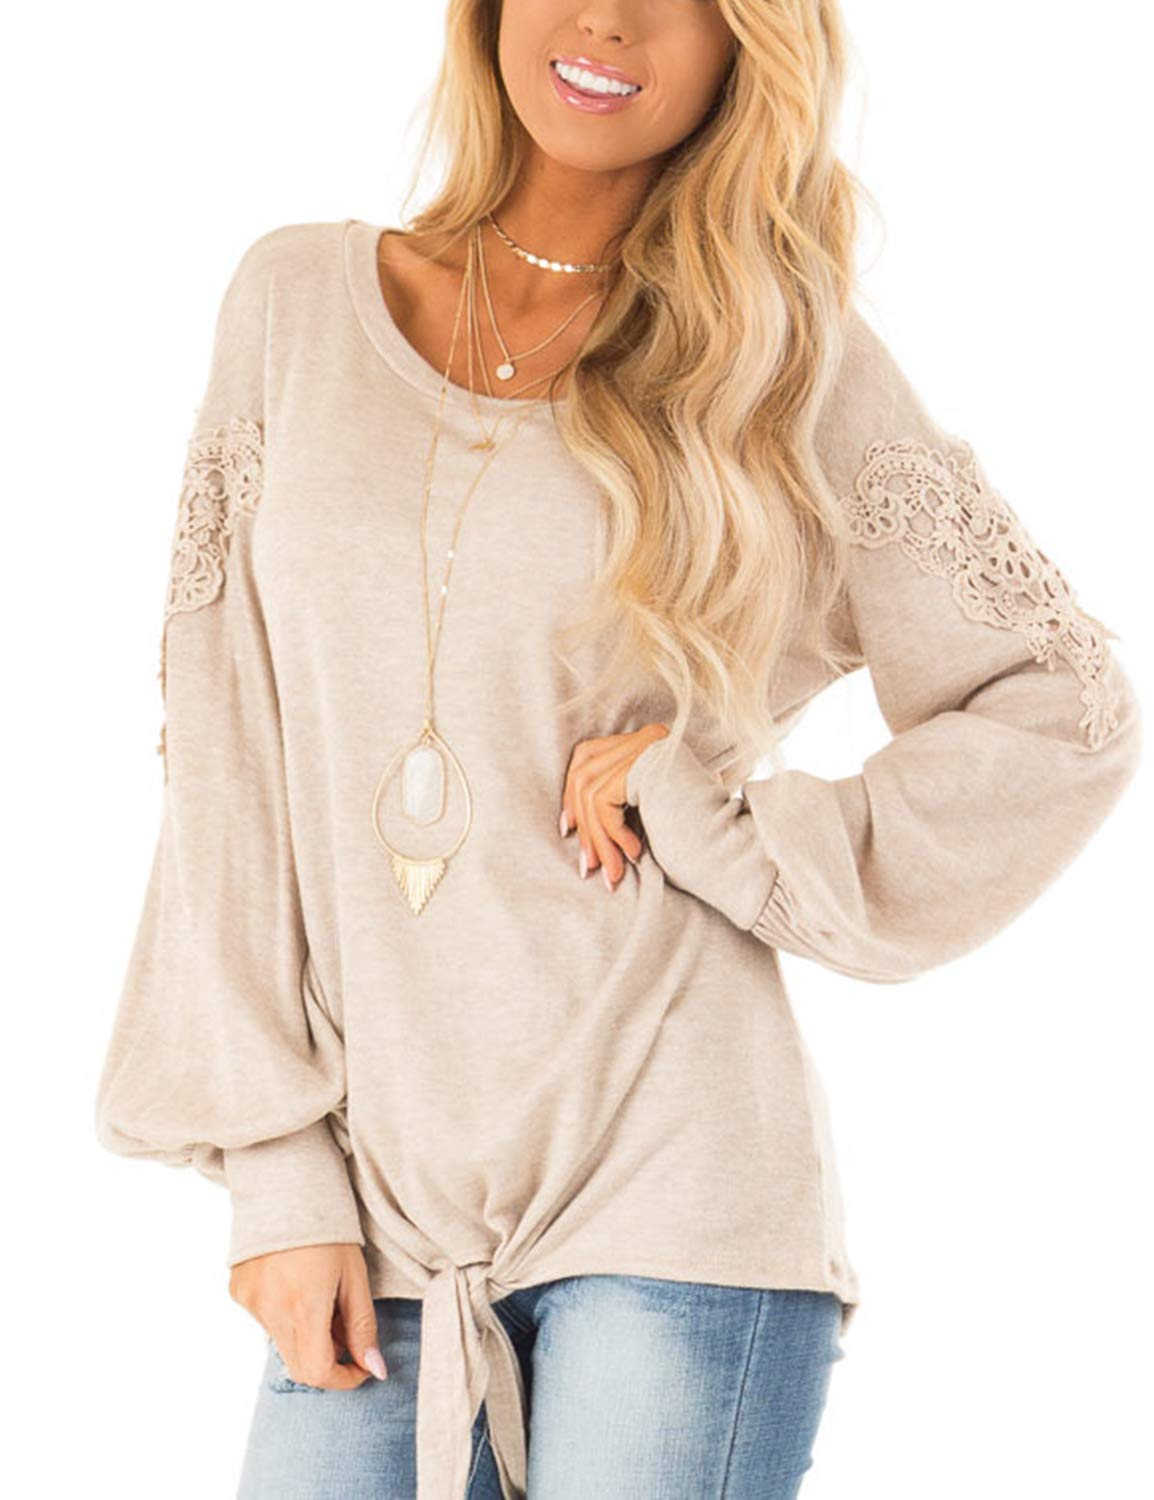 Blooming Jelly Womens Long Sleeve Round Neck Lace Knit Casual Shirt Top Beige